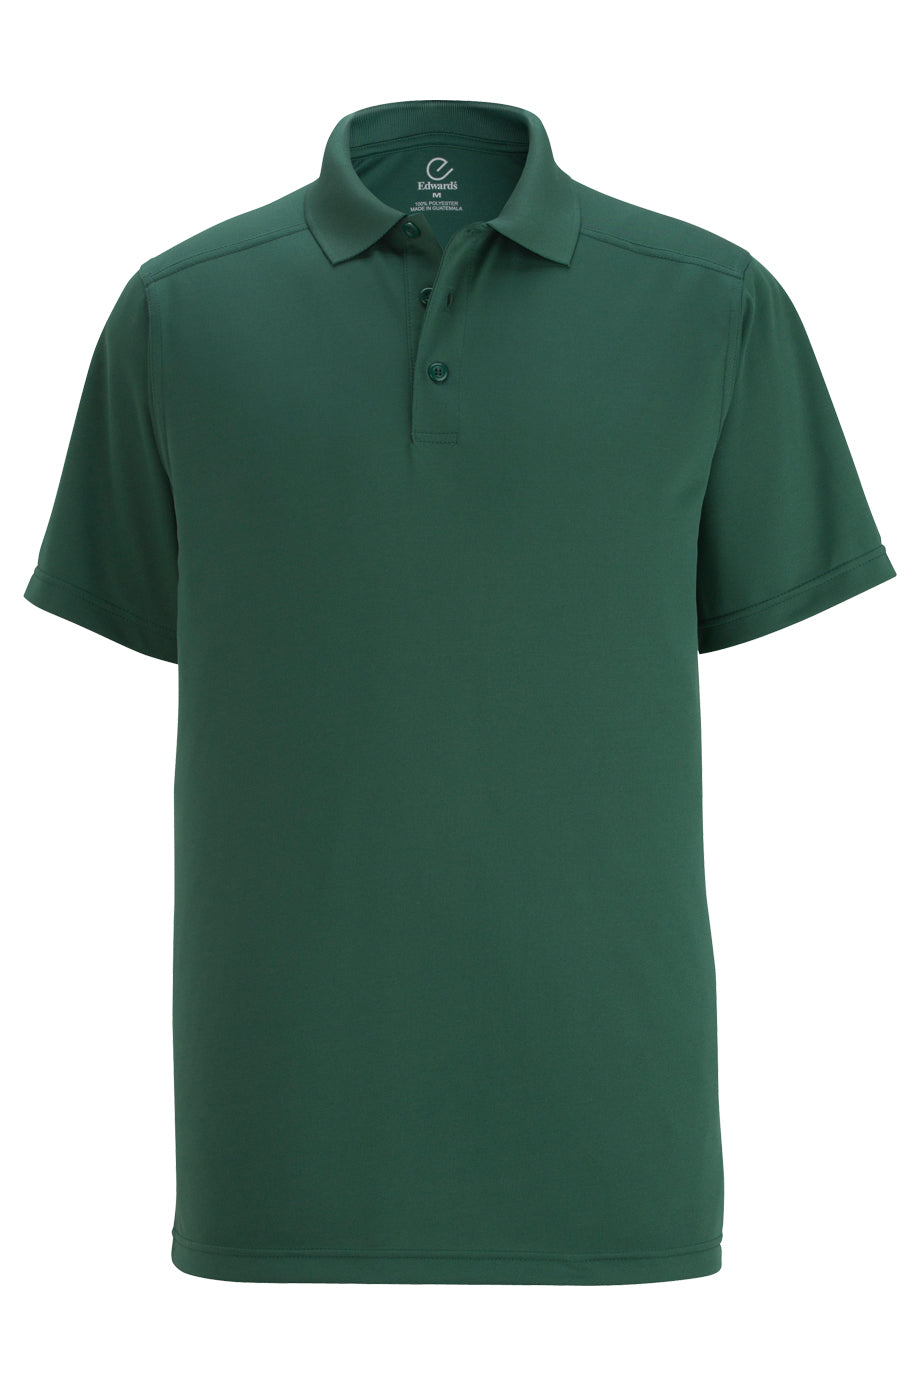 Fern Green Edwards Mens Snag-Proof Short Sleeve Polo